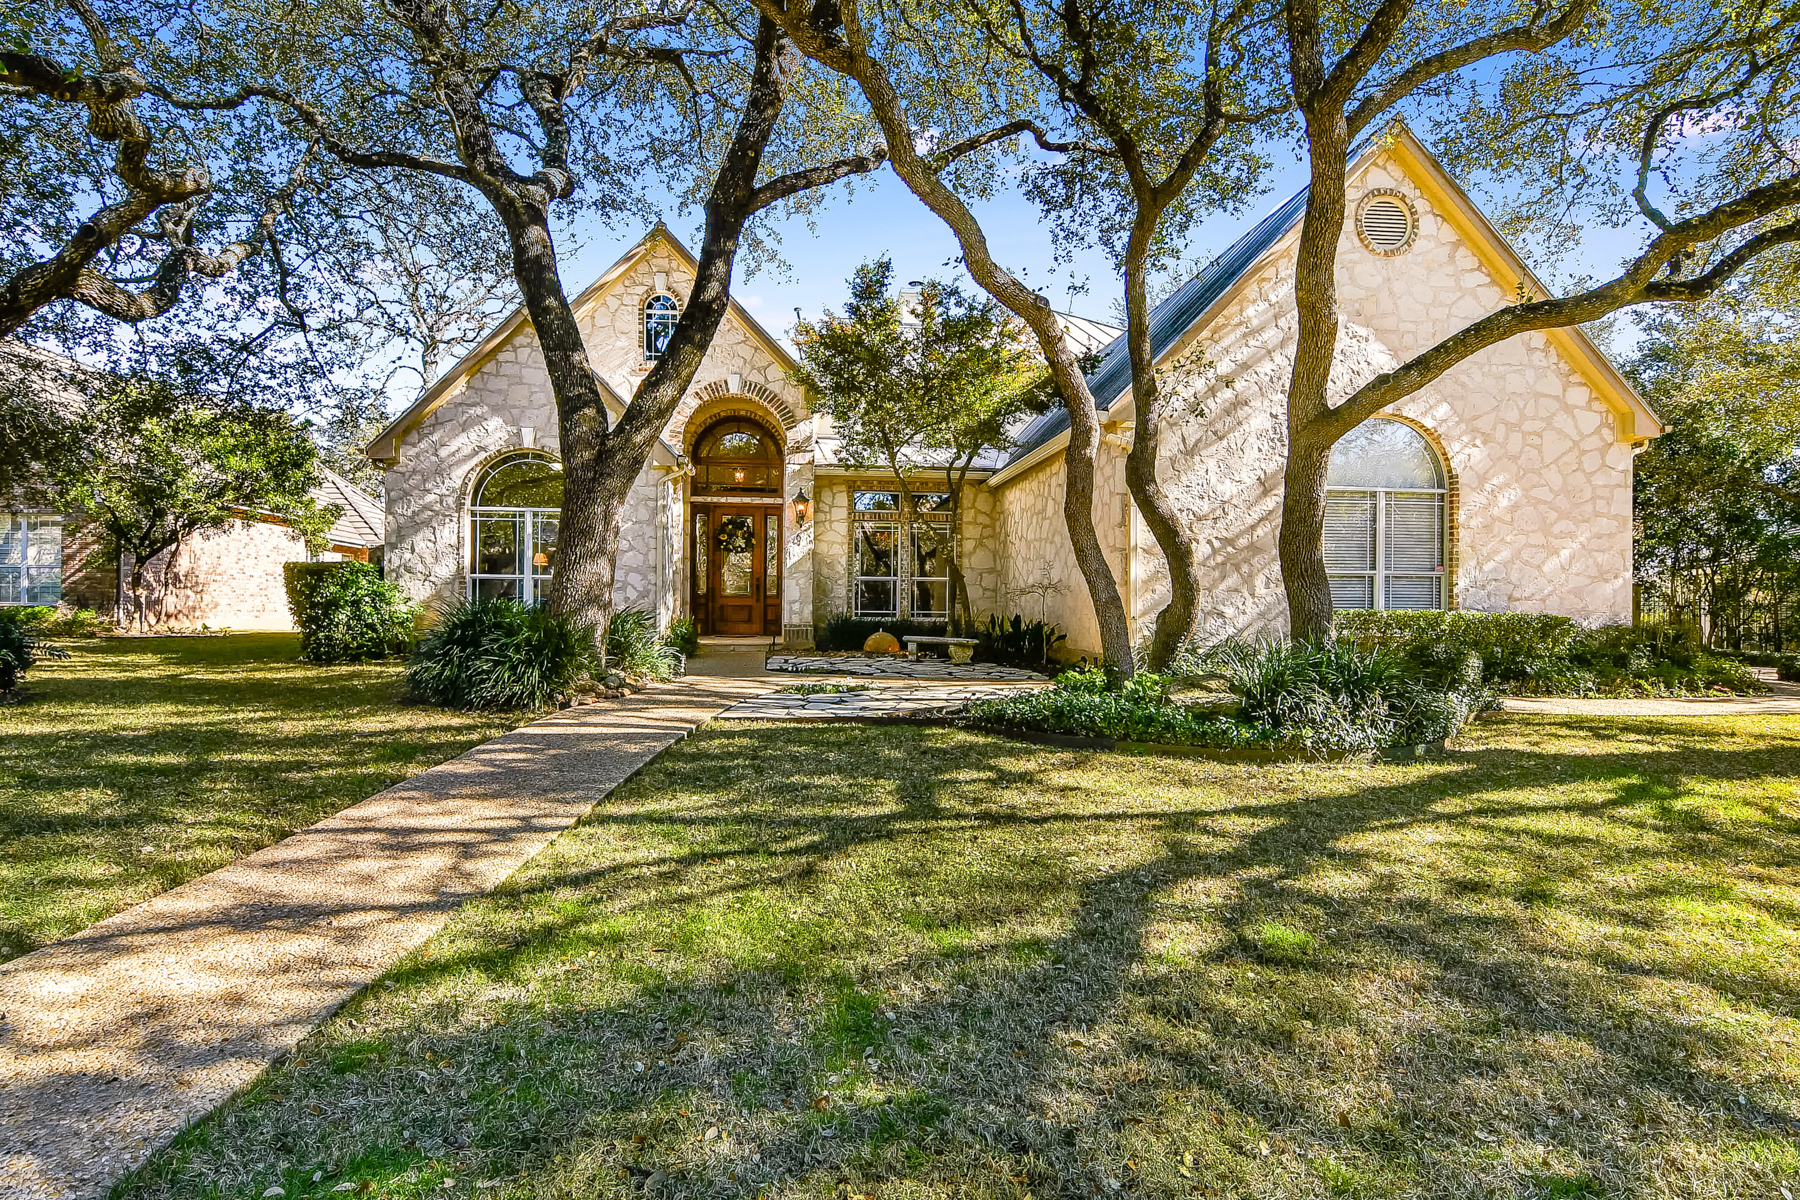 Single Family Home for Sale at Luxurious Home in Orsinger Lane 6 Orsinger Hill San Antonio, Texas 78230 United States